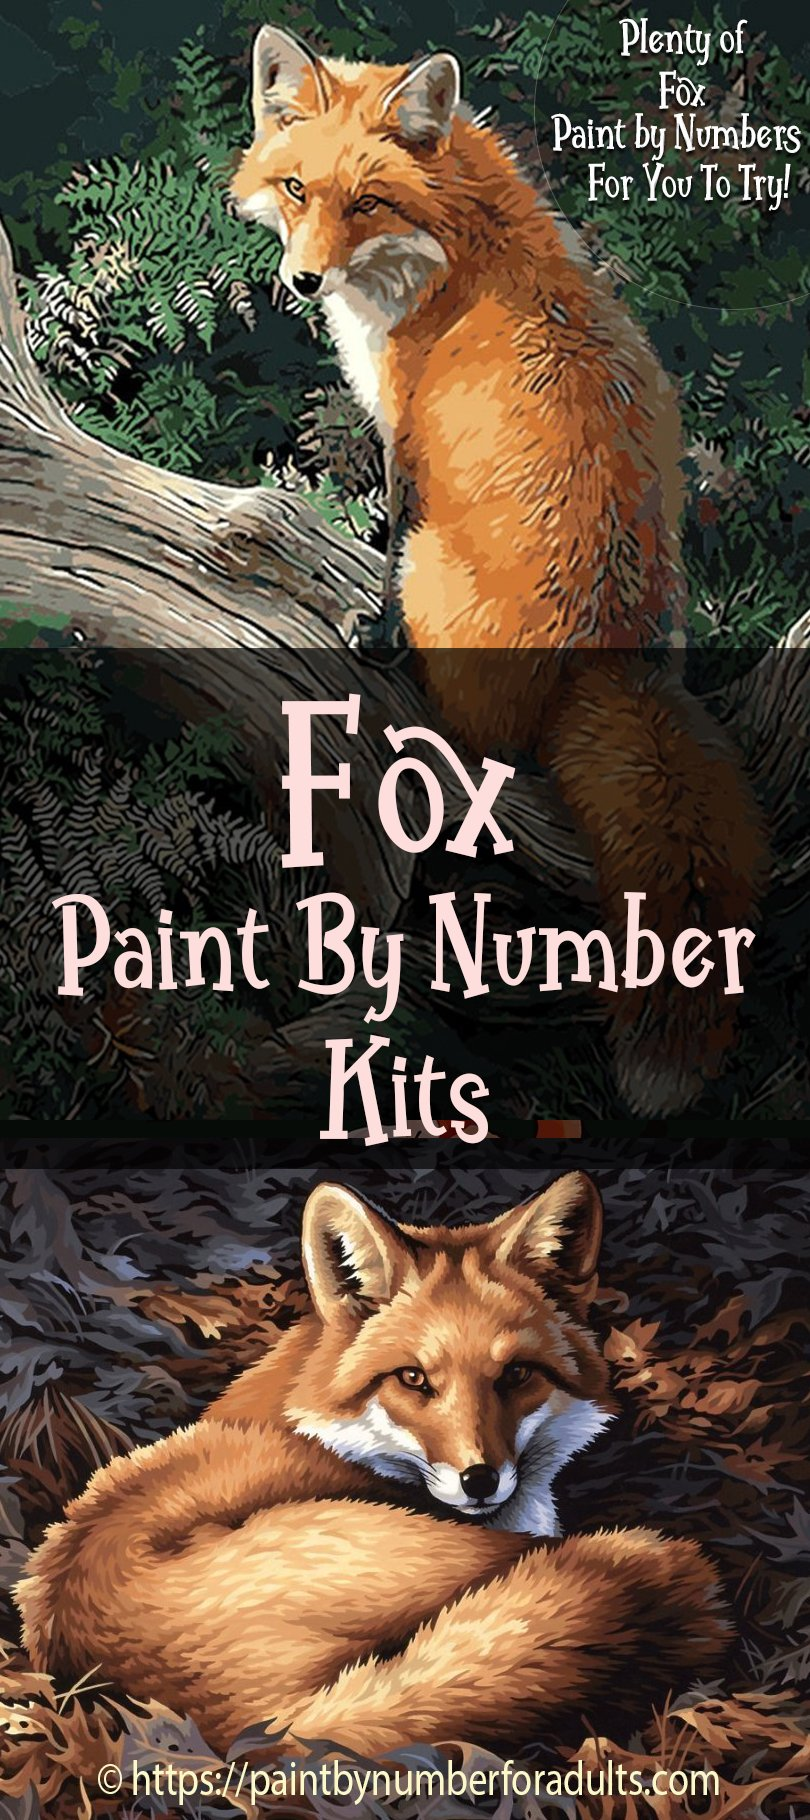 Fox Paint By Number Kits